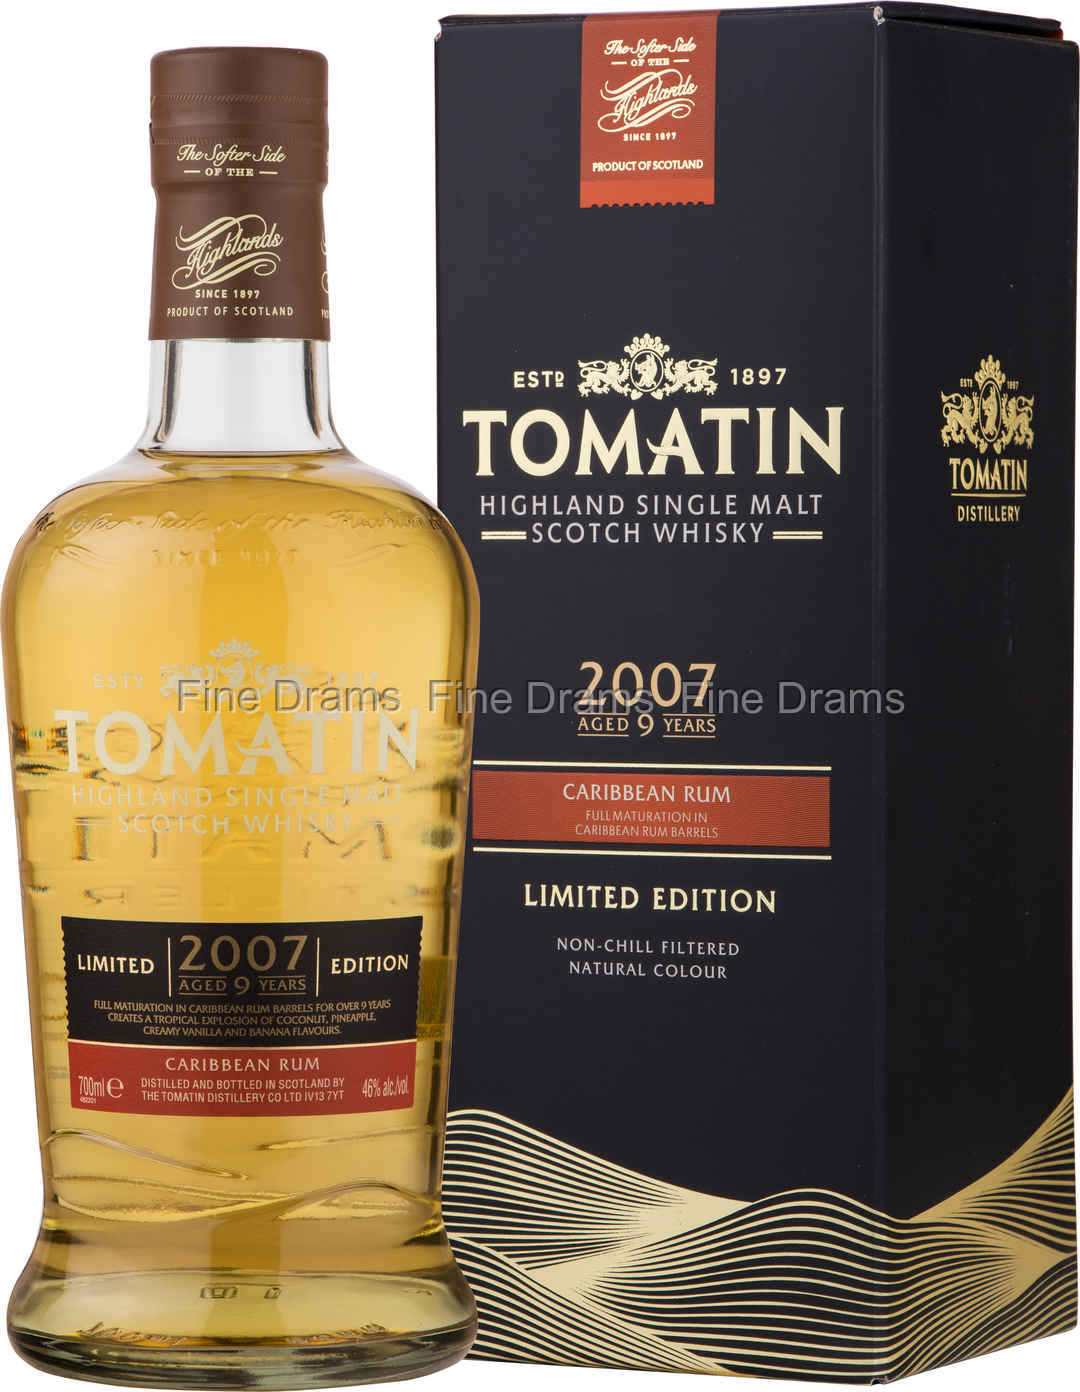 Image result for tomatin 2007 caribbean rum